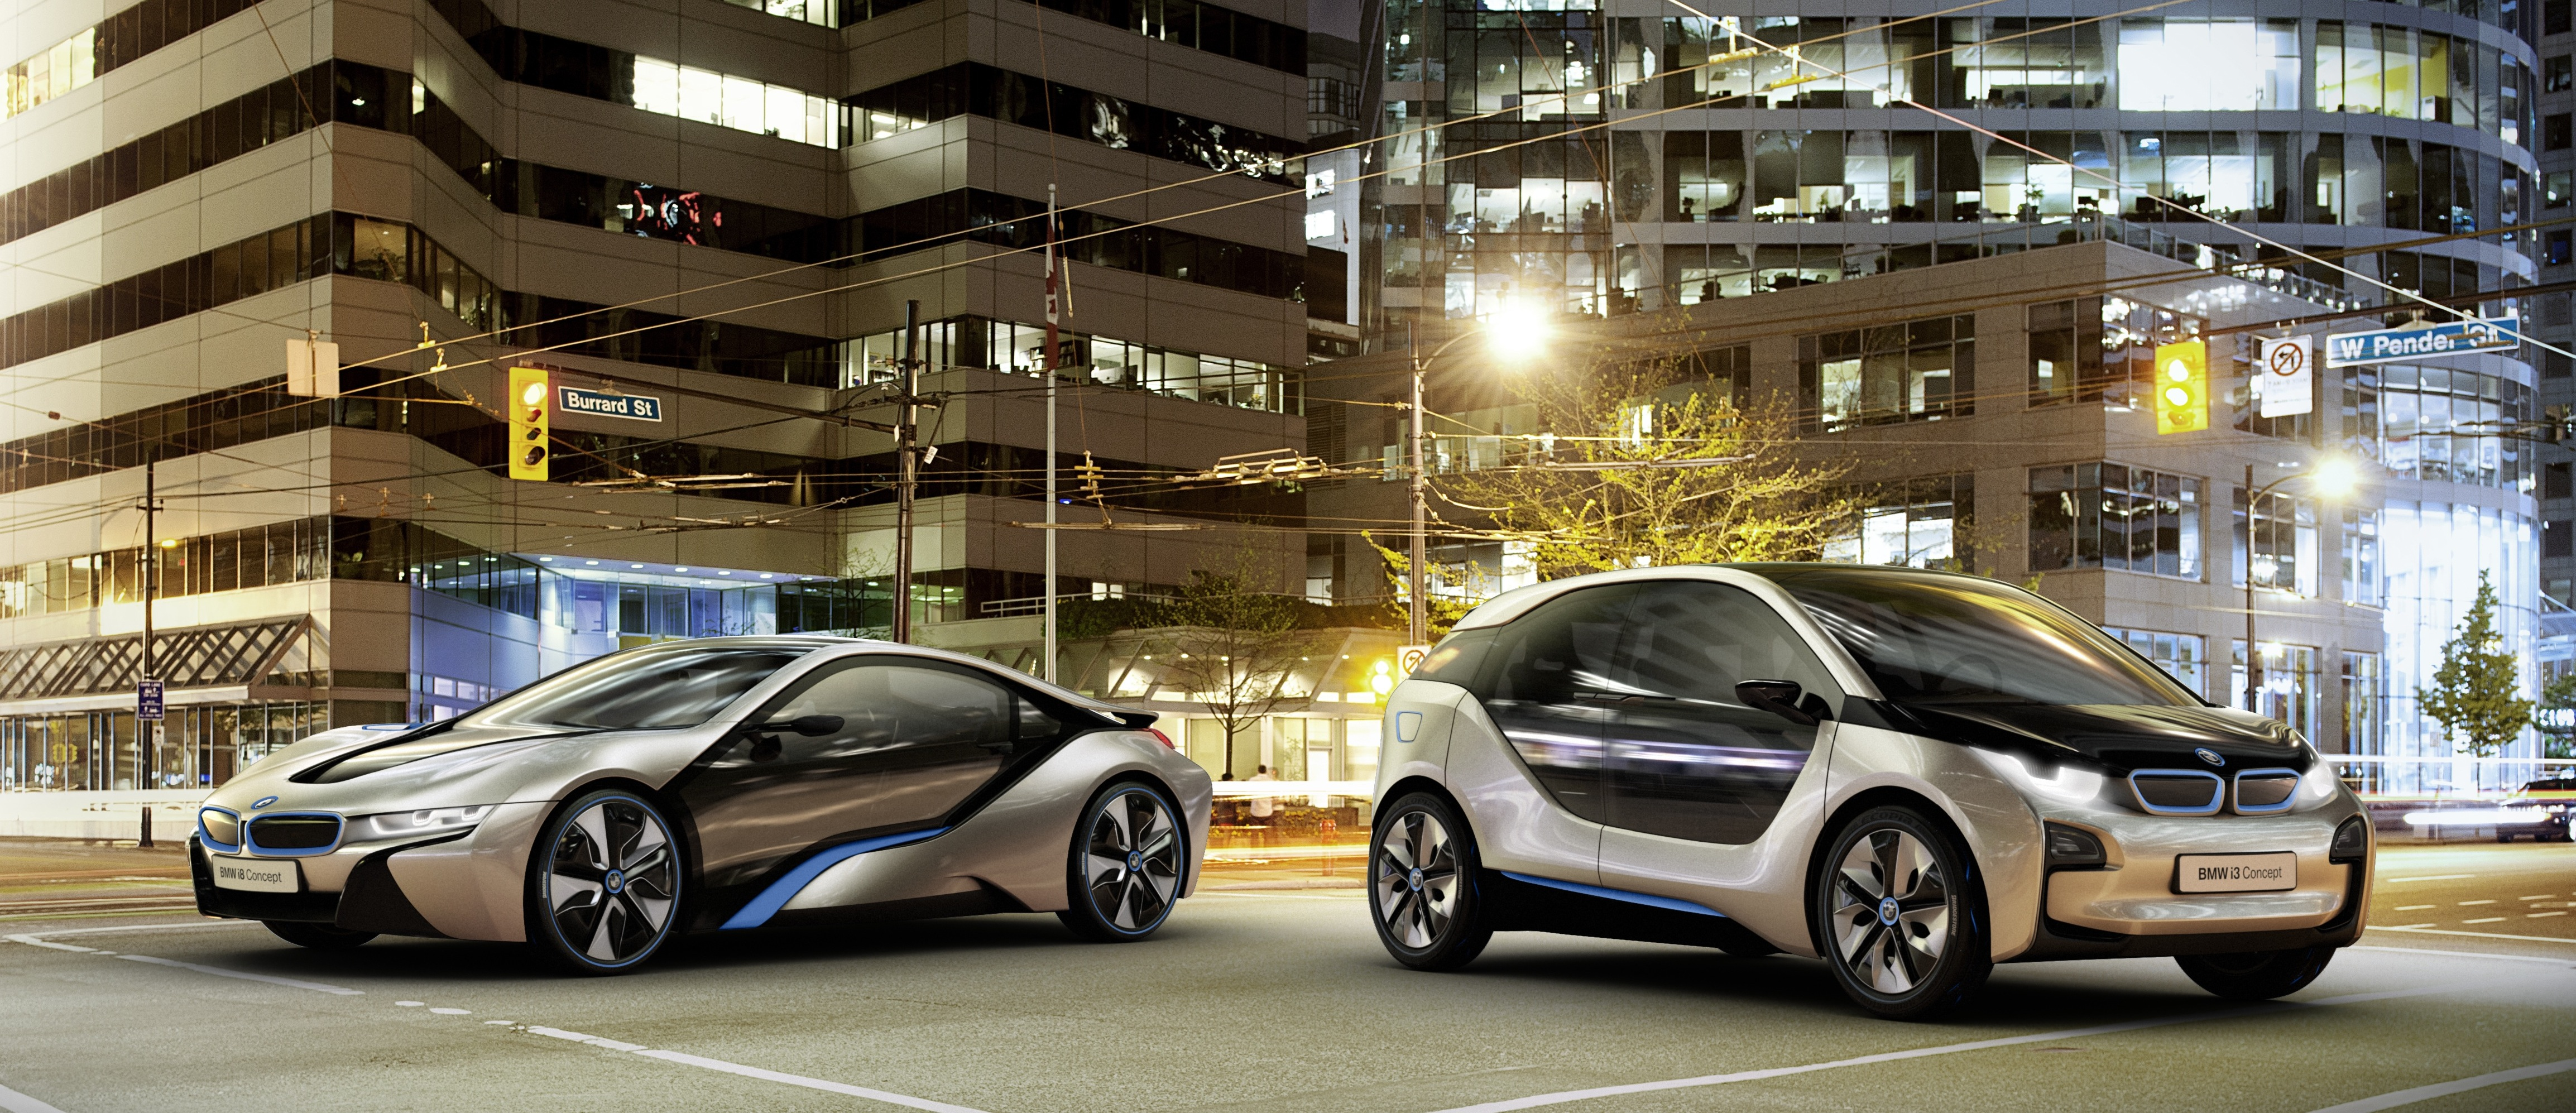 Electric Cars Range Bmw Electric Car I8 Range